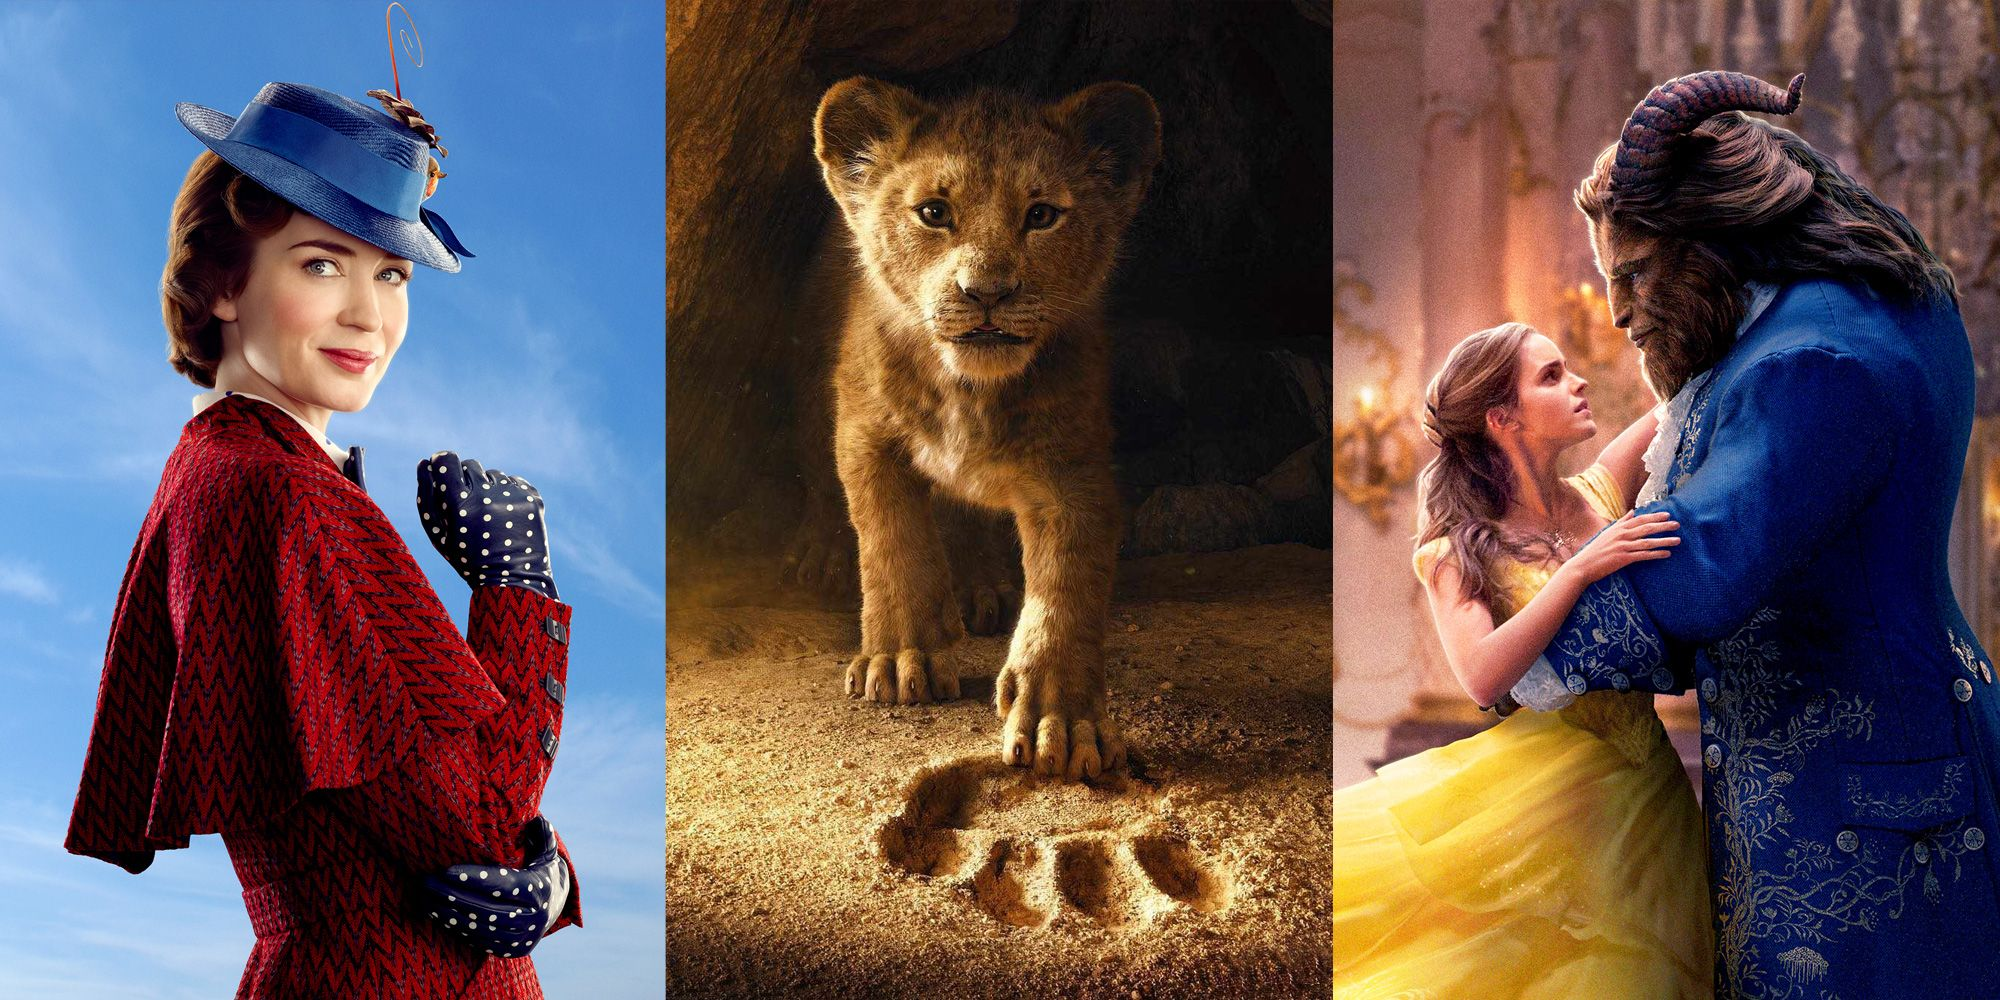 10 Best New Movies Winter 2018-2019 - Upcoming Films to ...